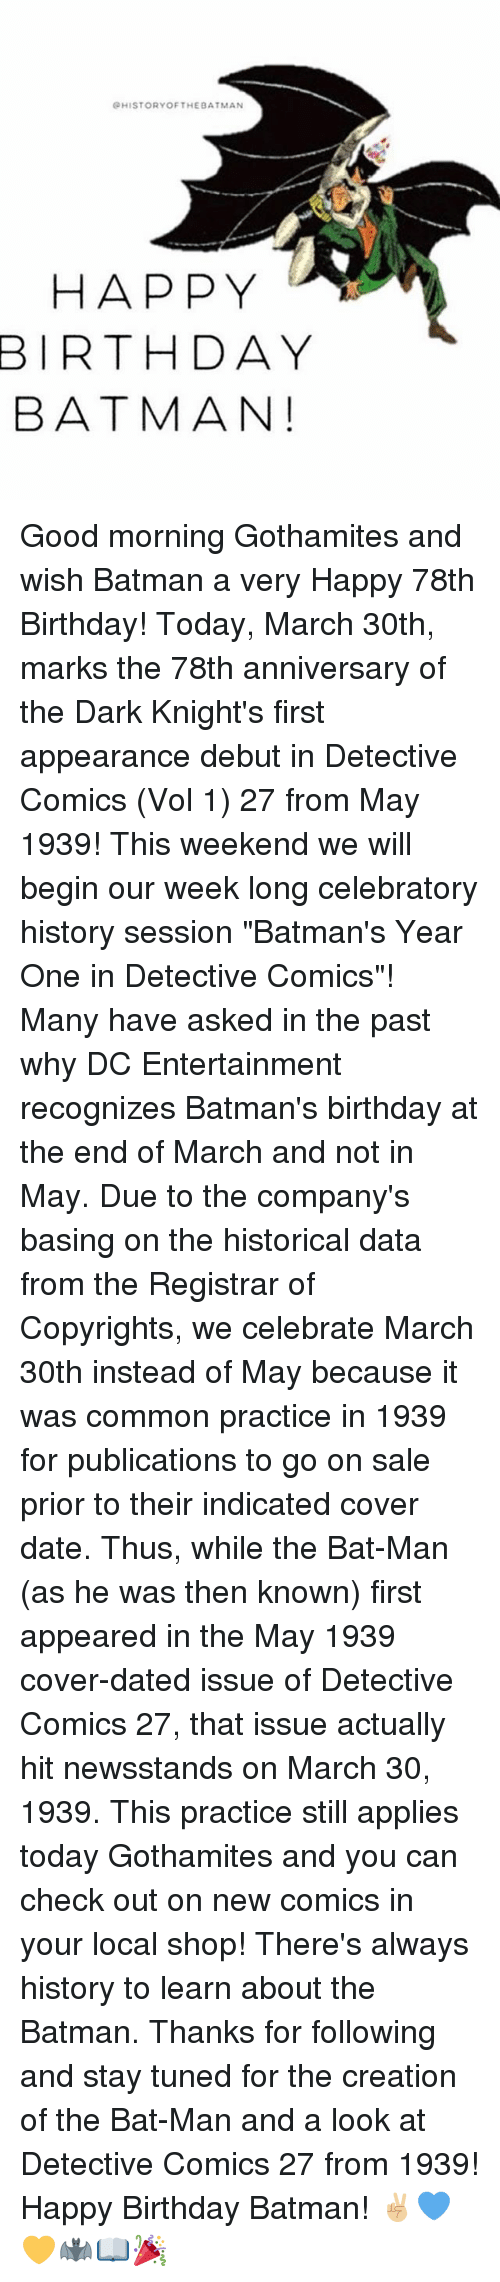 """Batman, Birthday, and Memes: QHISTORY OF THE BATMAN  HAPPY  BIRTHDAY  BATMAN! Good morning Gothamites and wish Batman a very Happy 78th Birthday! Today, March 30th, marks the 78th anniversary of the Dark Knight's first appearance debut in Detective Comics (Vol 1) 27 from May 1939! This weekend we will begin our week long celebratory history session """"Batman's Year One in Detective Comics""""! Many have asked in the past why DC Entertainment recognizes Batman's birthday at the end of March and not in May. Due to the company's basing on the historical data from the Registrar of Copyrights, we celebrate March 30th instead of May because it was common practice in 1939 for publications to go on sale prior to their indicated cover date. Thus, while the Bat-Man (as he was then known) first appeared in the May 1939 cover-dated issue of Detective Comics 27, that issue actually hit newsstands on March 30, 1939. This practice still applies today Gothamites and you can check out on new comics in your local shop! There's always history to learn about the Batman. Thanks for following and stay tuned for the creation of the Bat-Man and a look at Detective Comics 27 from 1939! Happy Birthday Batman! ✌🏼️💙💛🦇📖🎉"""